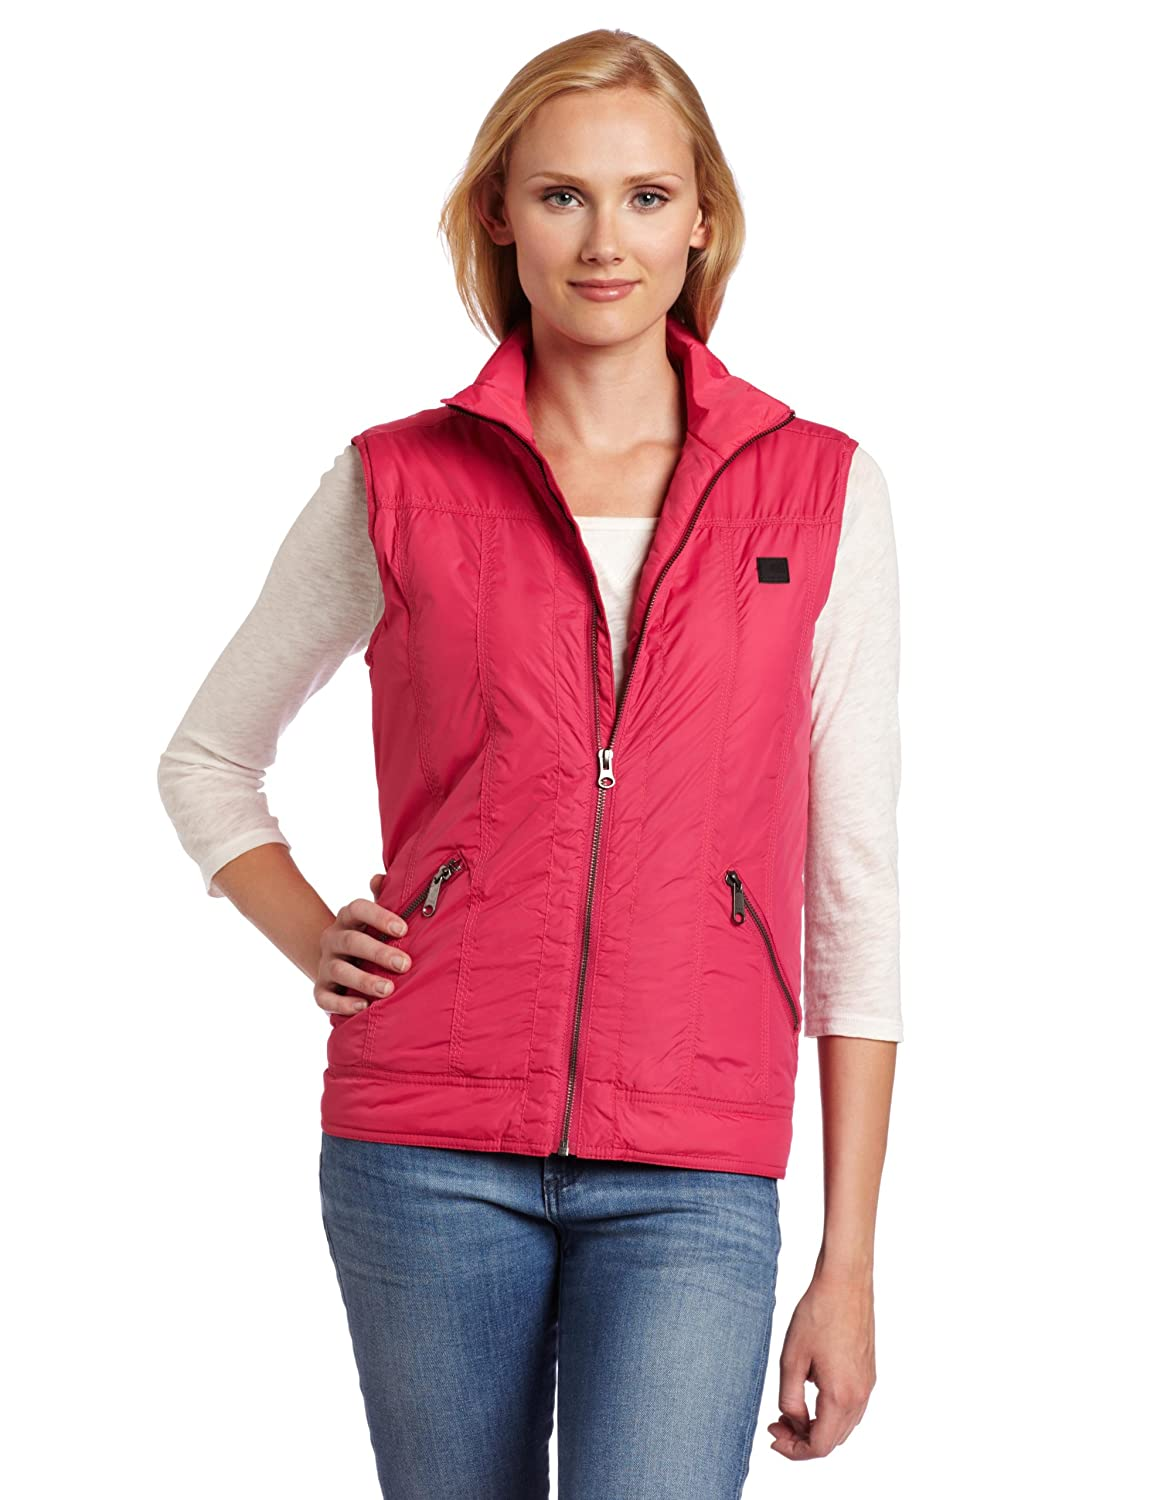 Carhartt Women's Skyline Vest Insulated Nylon Zip front Morning Rose (Closeout) Medium Carhartt Womens WV006-MRS